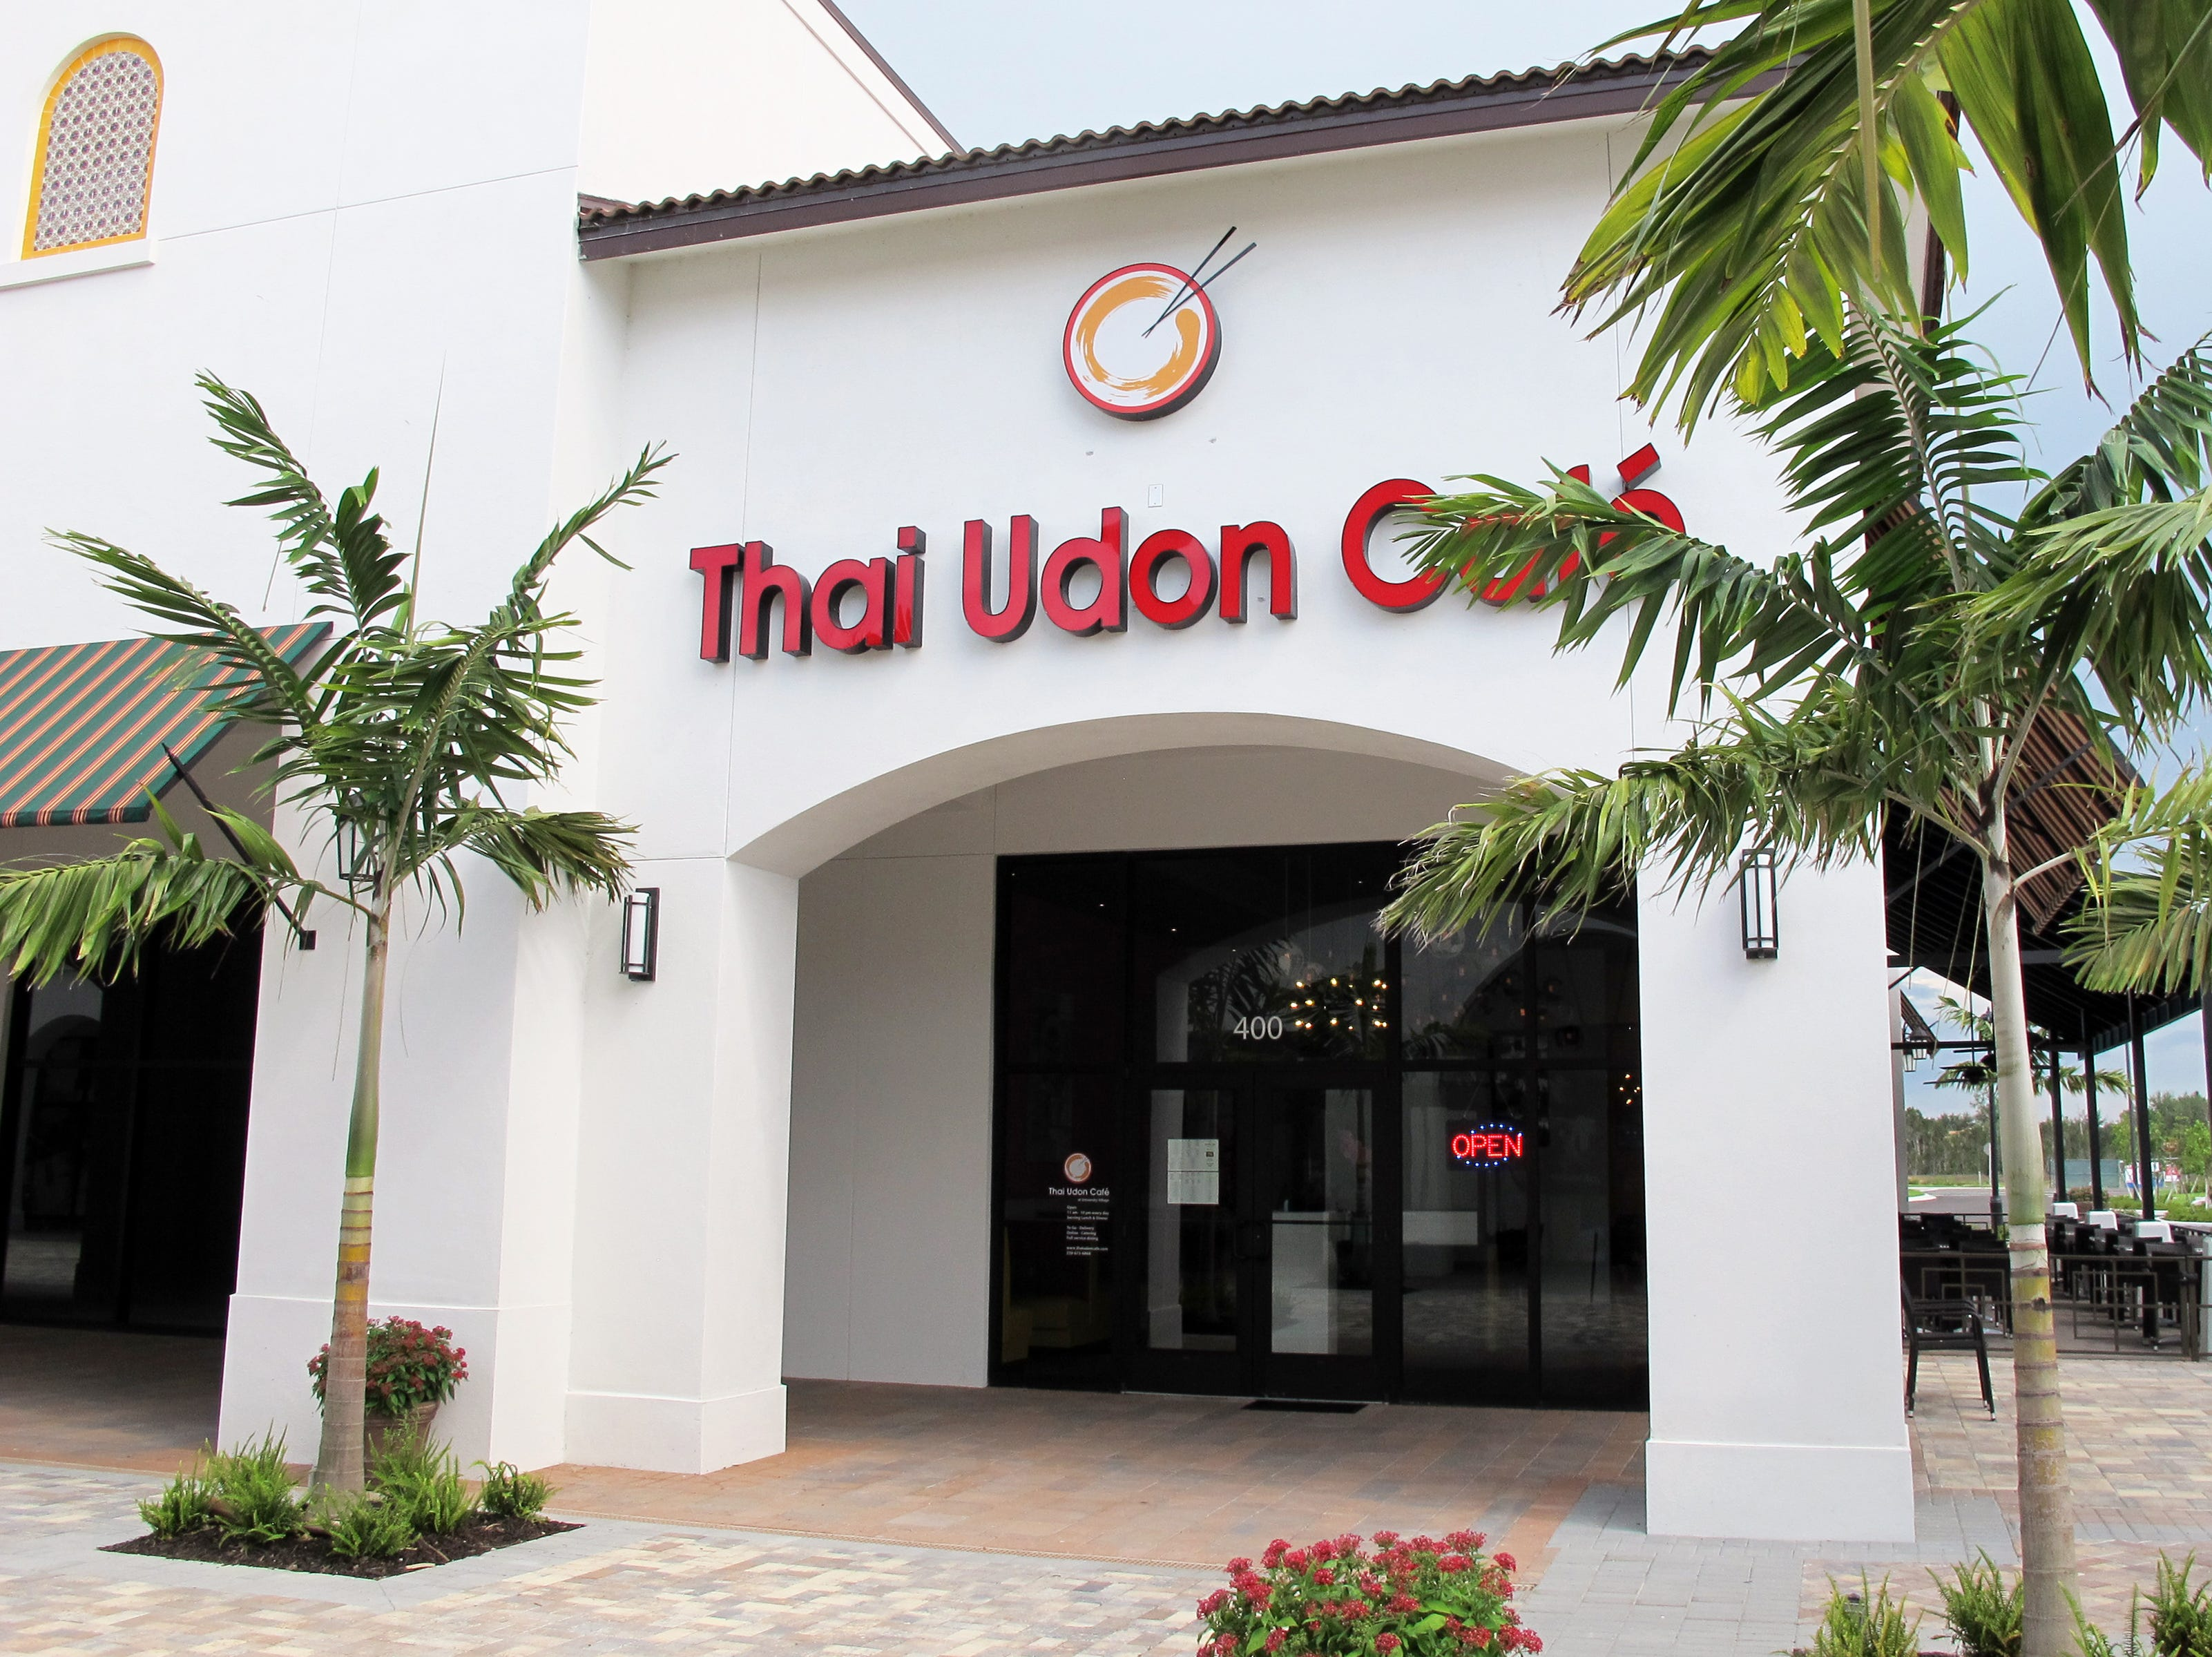 Thai Udon Cafe opened its third location in May 2018 iin the new University Village shops on Ben Hill Griffin Parkway near Florida Gulf Coast University.